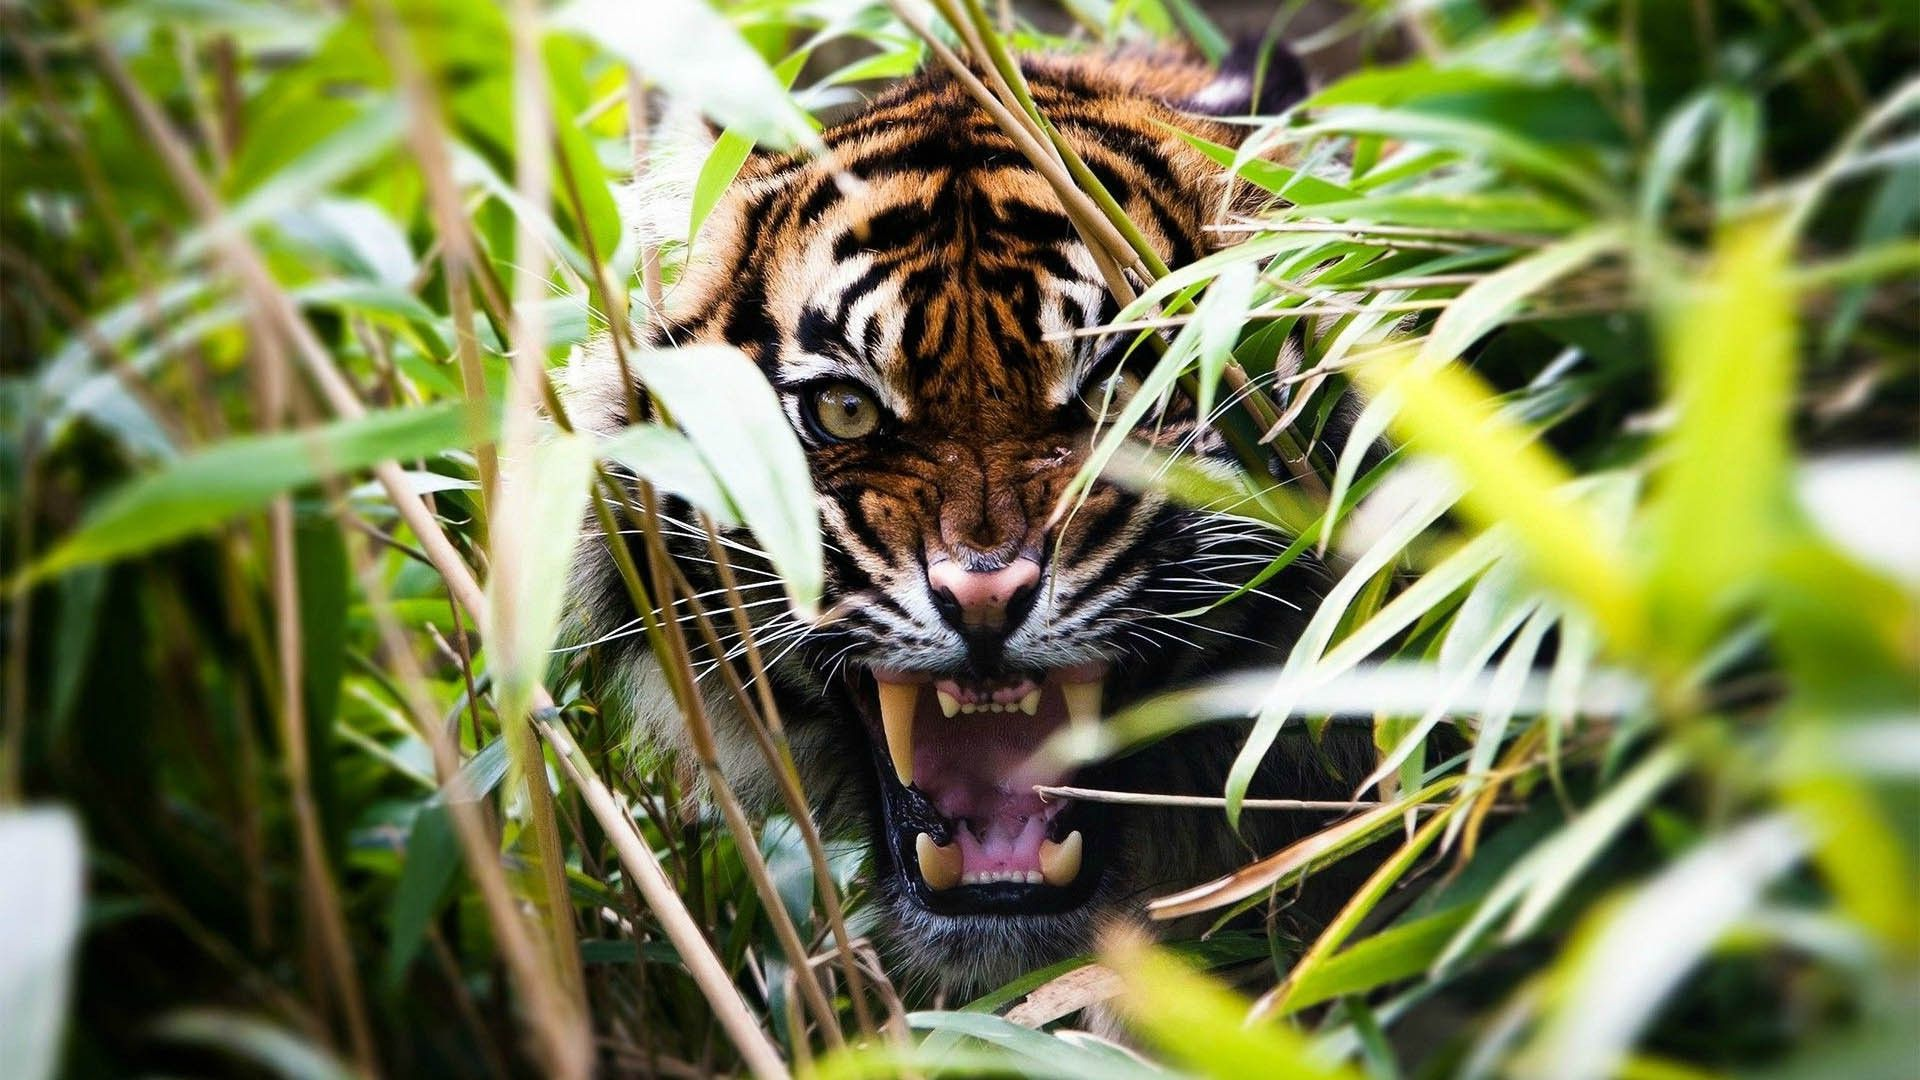 Tiger and Grass, Cool HD Wallpaper